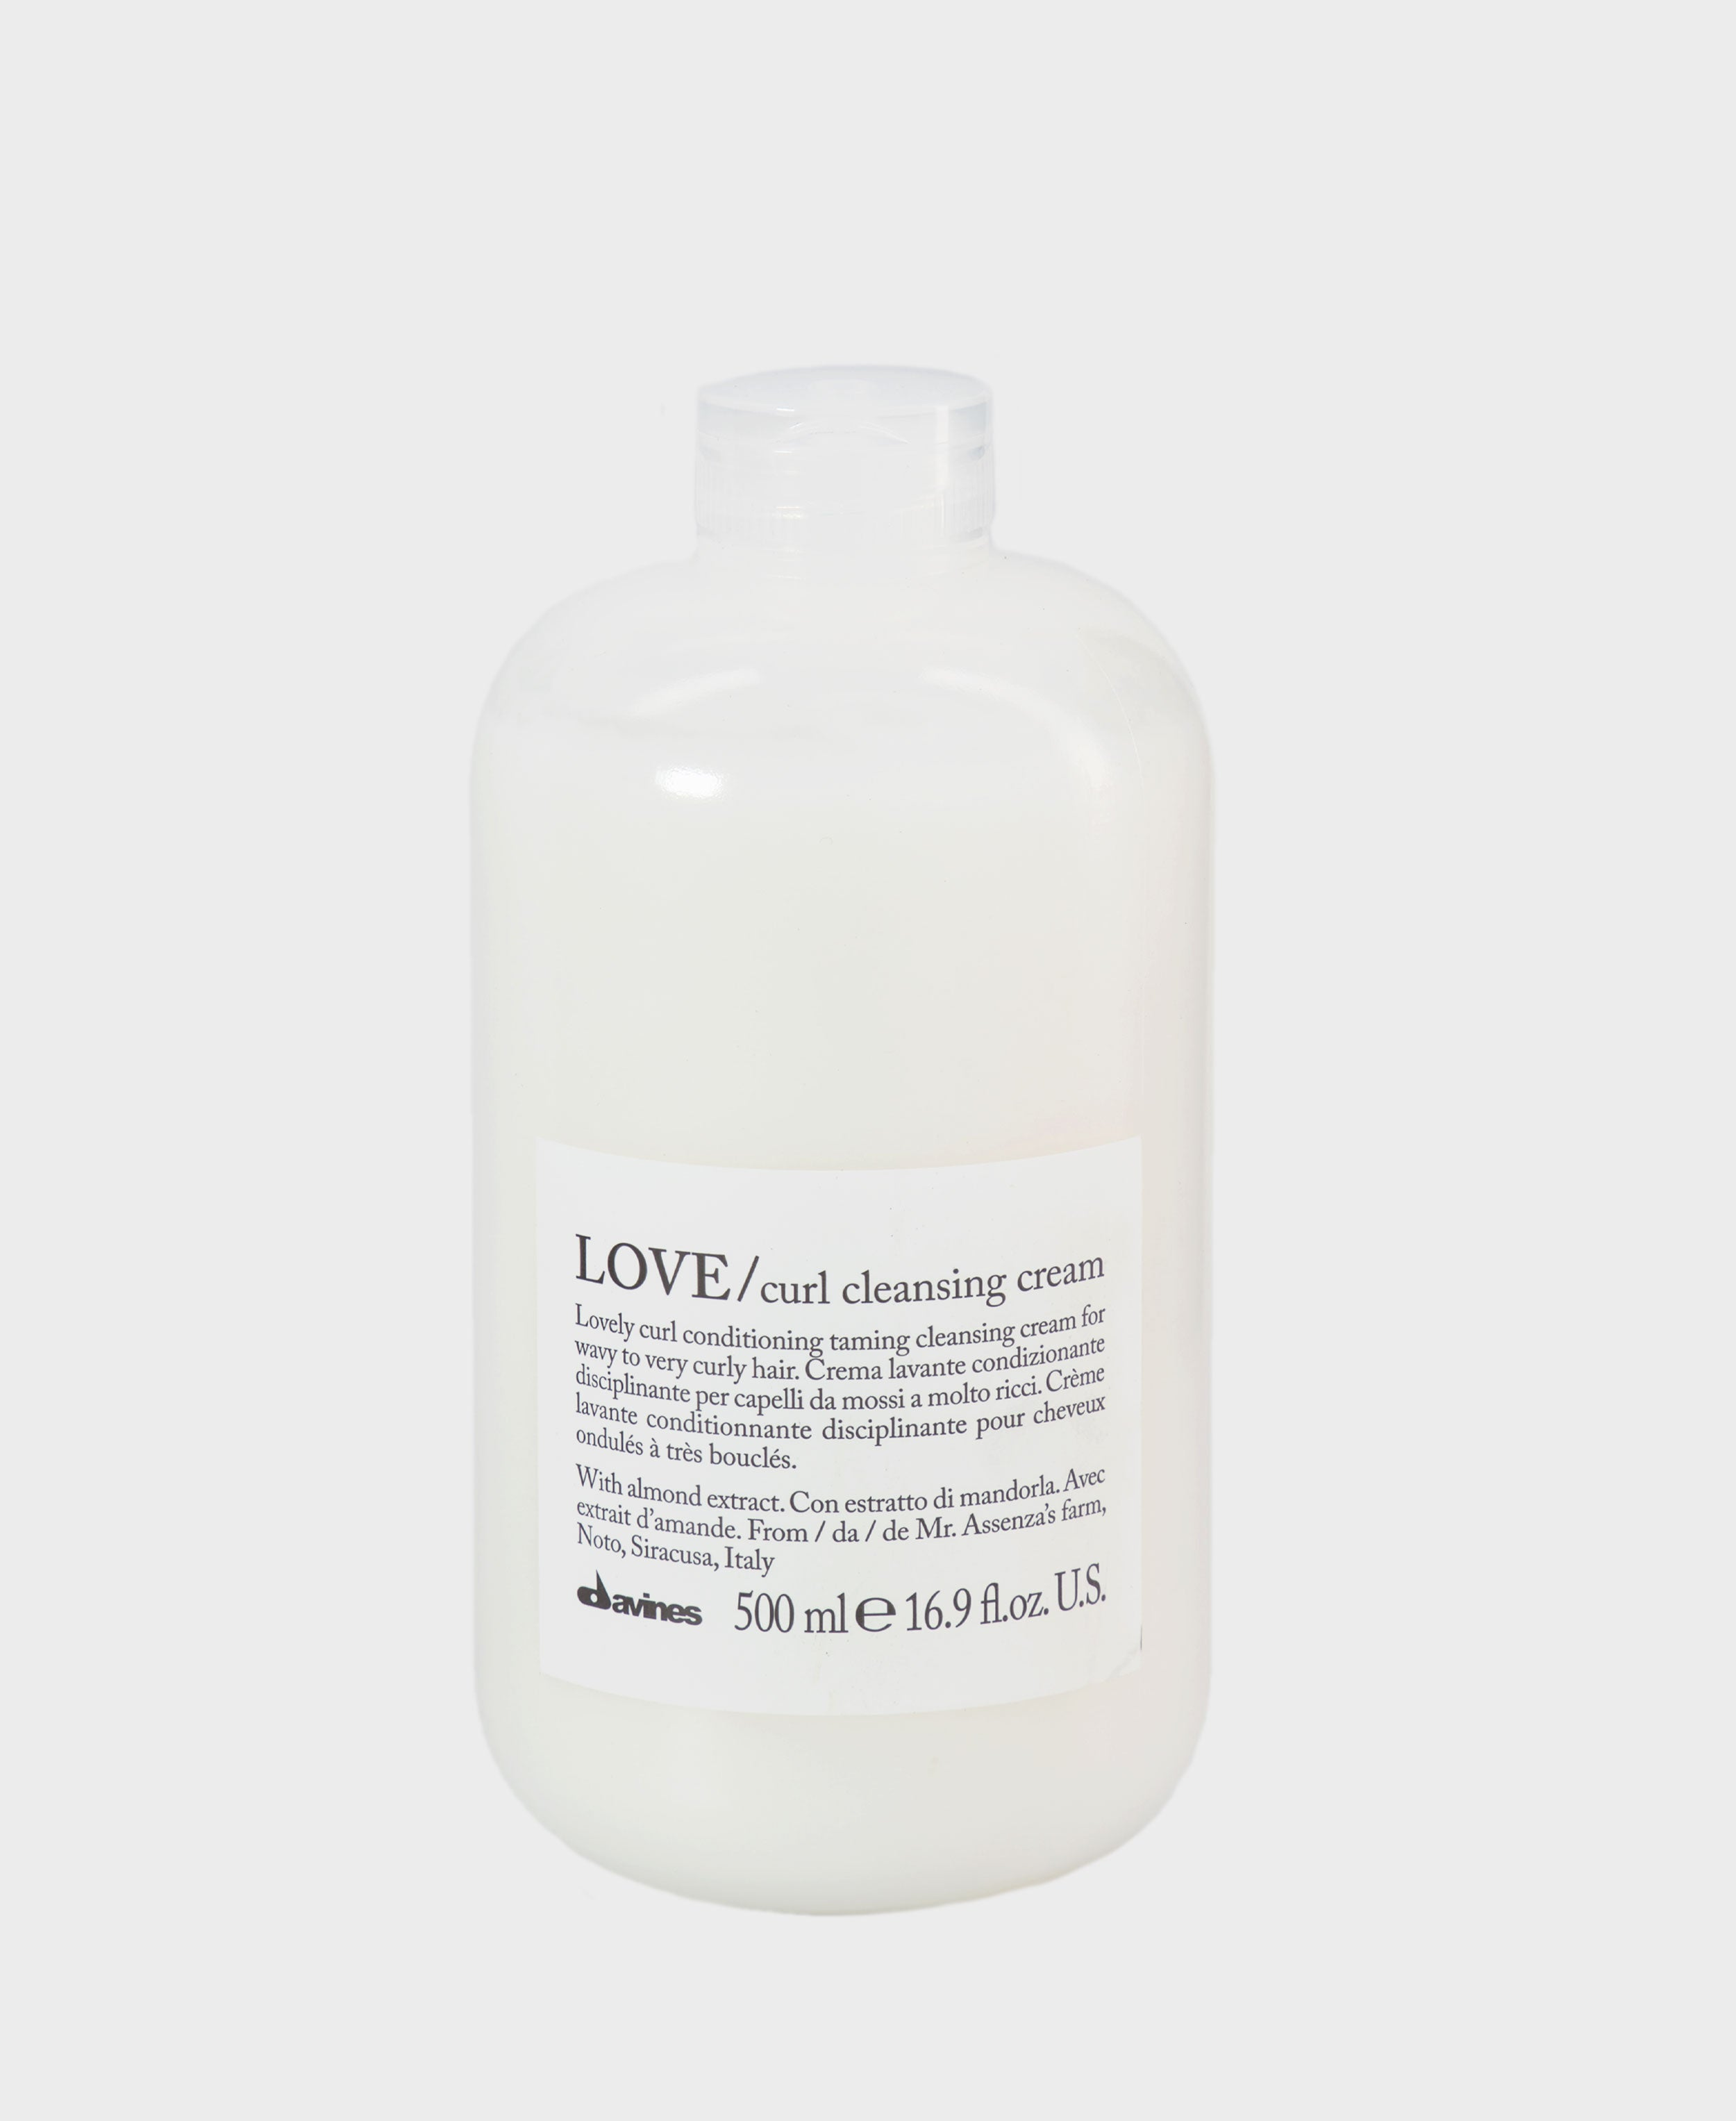 LOVE CURL CLEANSING CREAM